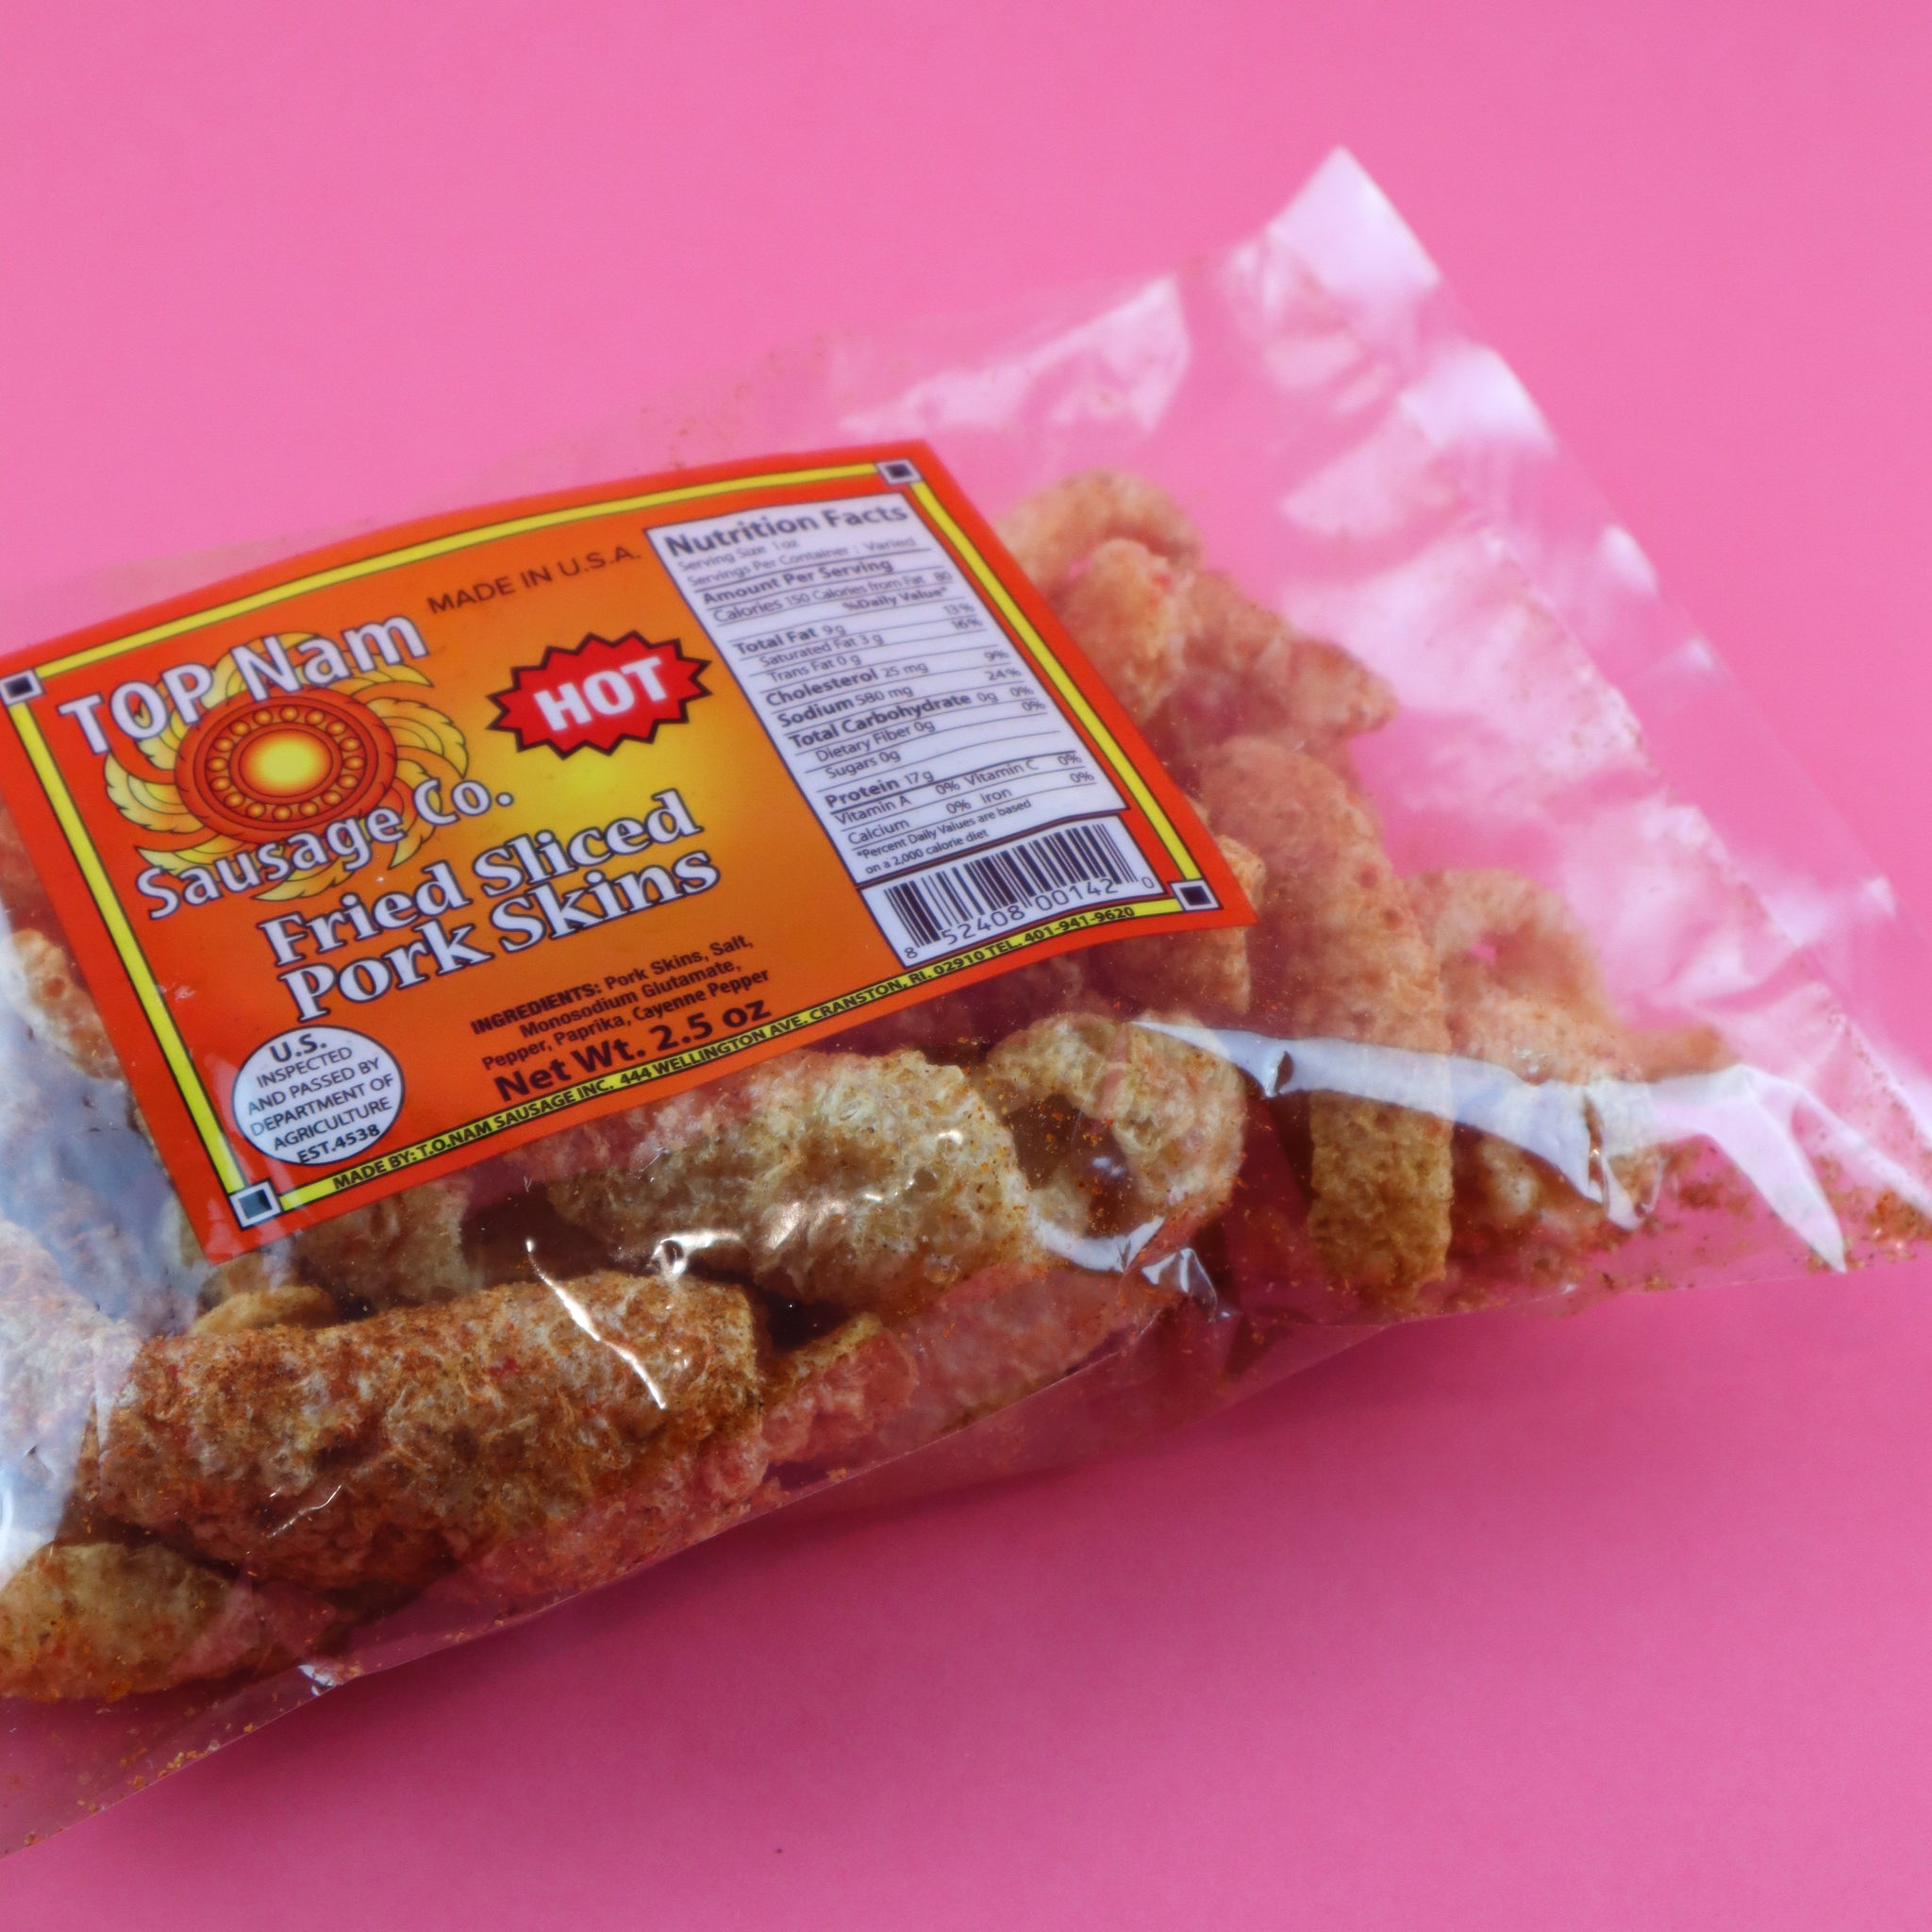 TOP NAM SAUSAGE CO SLICED PORK SKINS (SPICY)